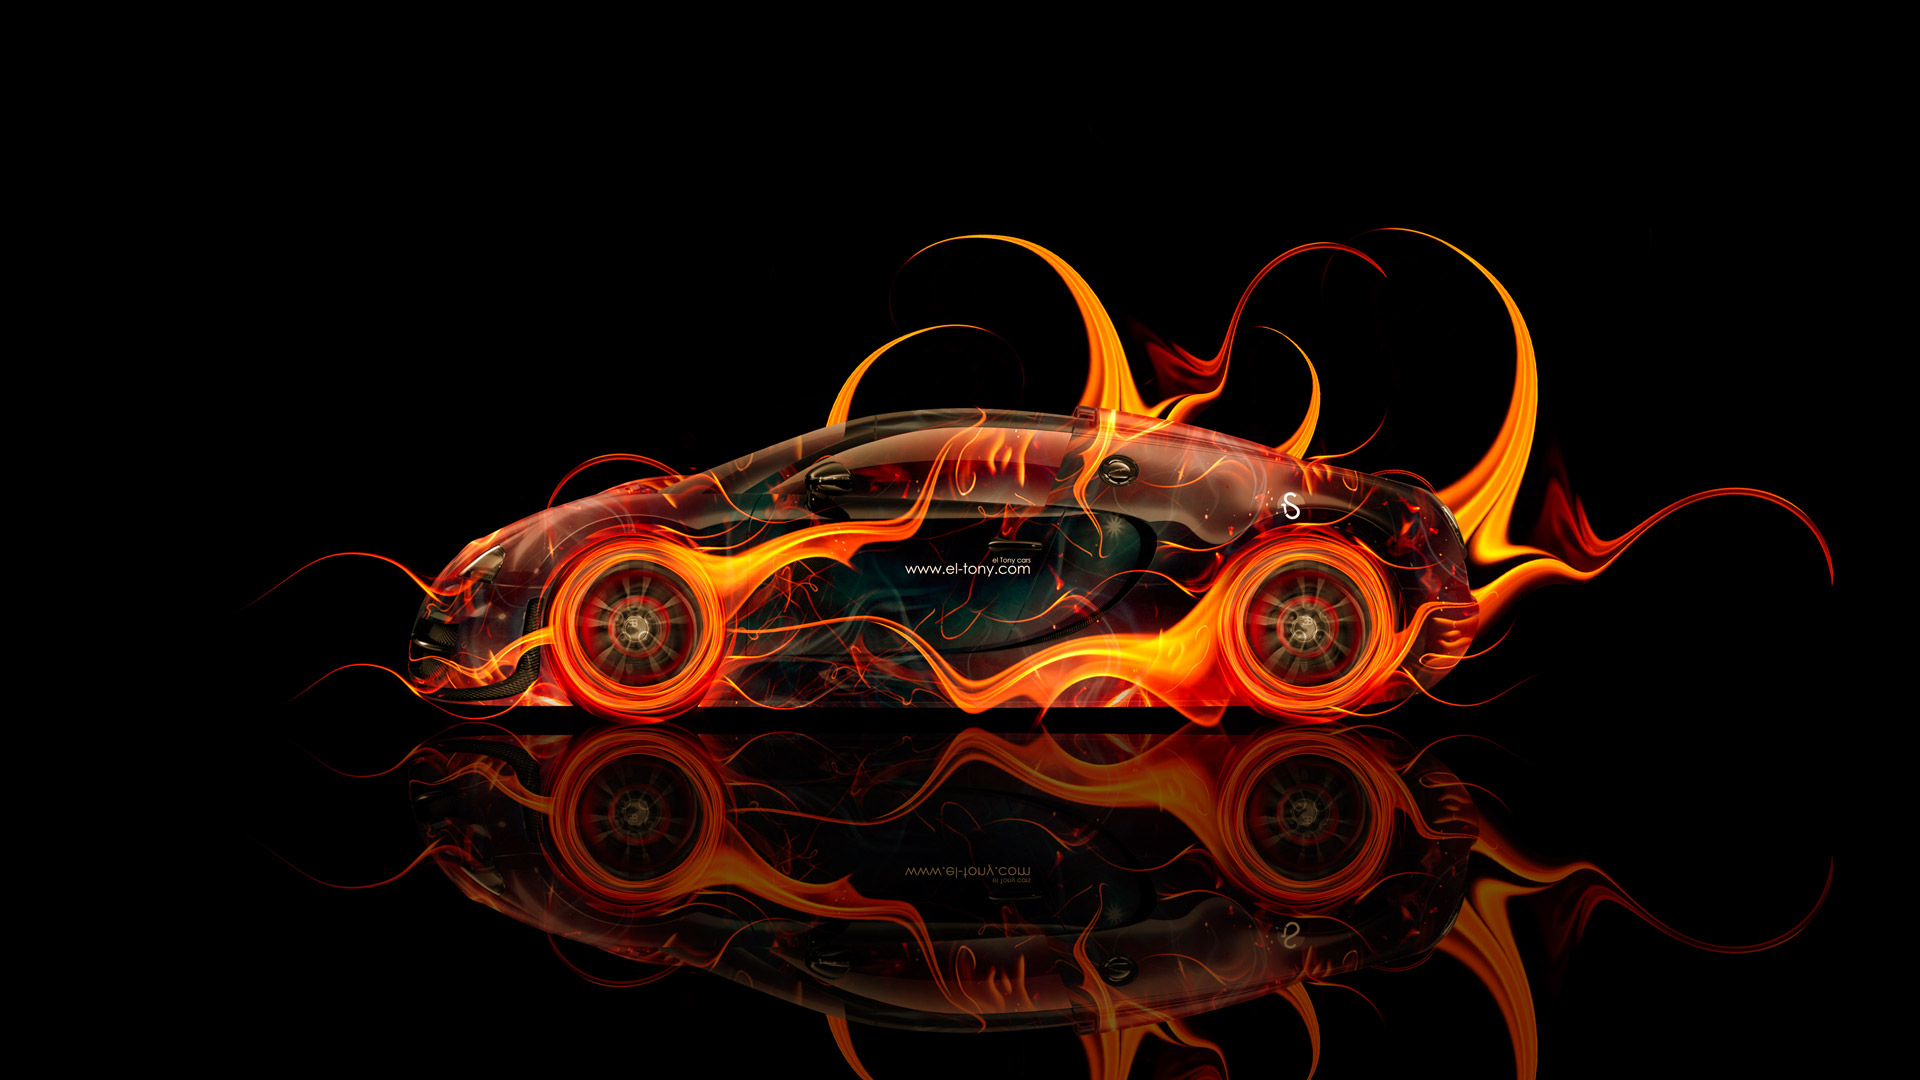 Merveilleux Bugatti Veyron Side Fire Abstract Car 2014 HD